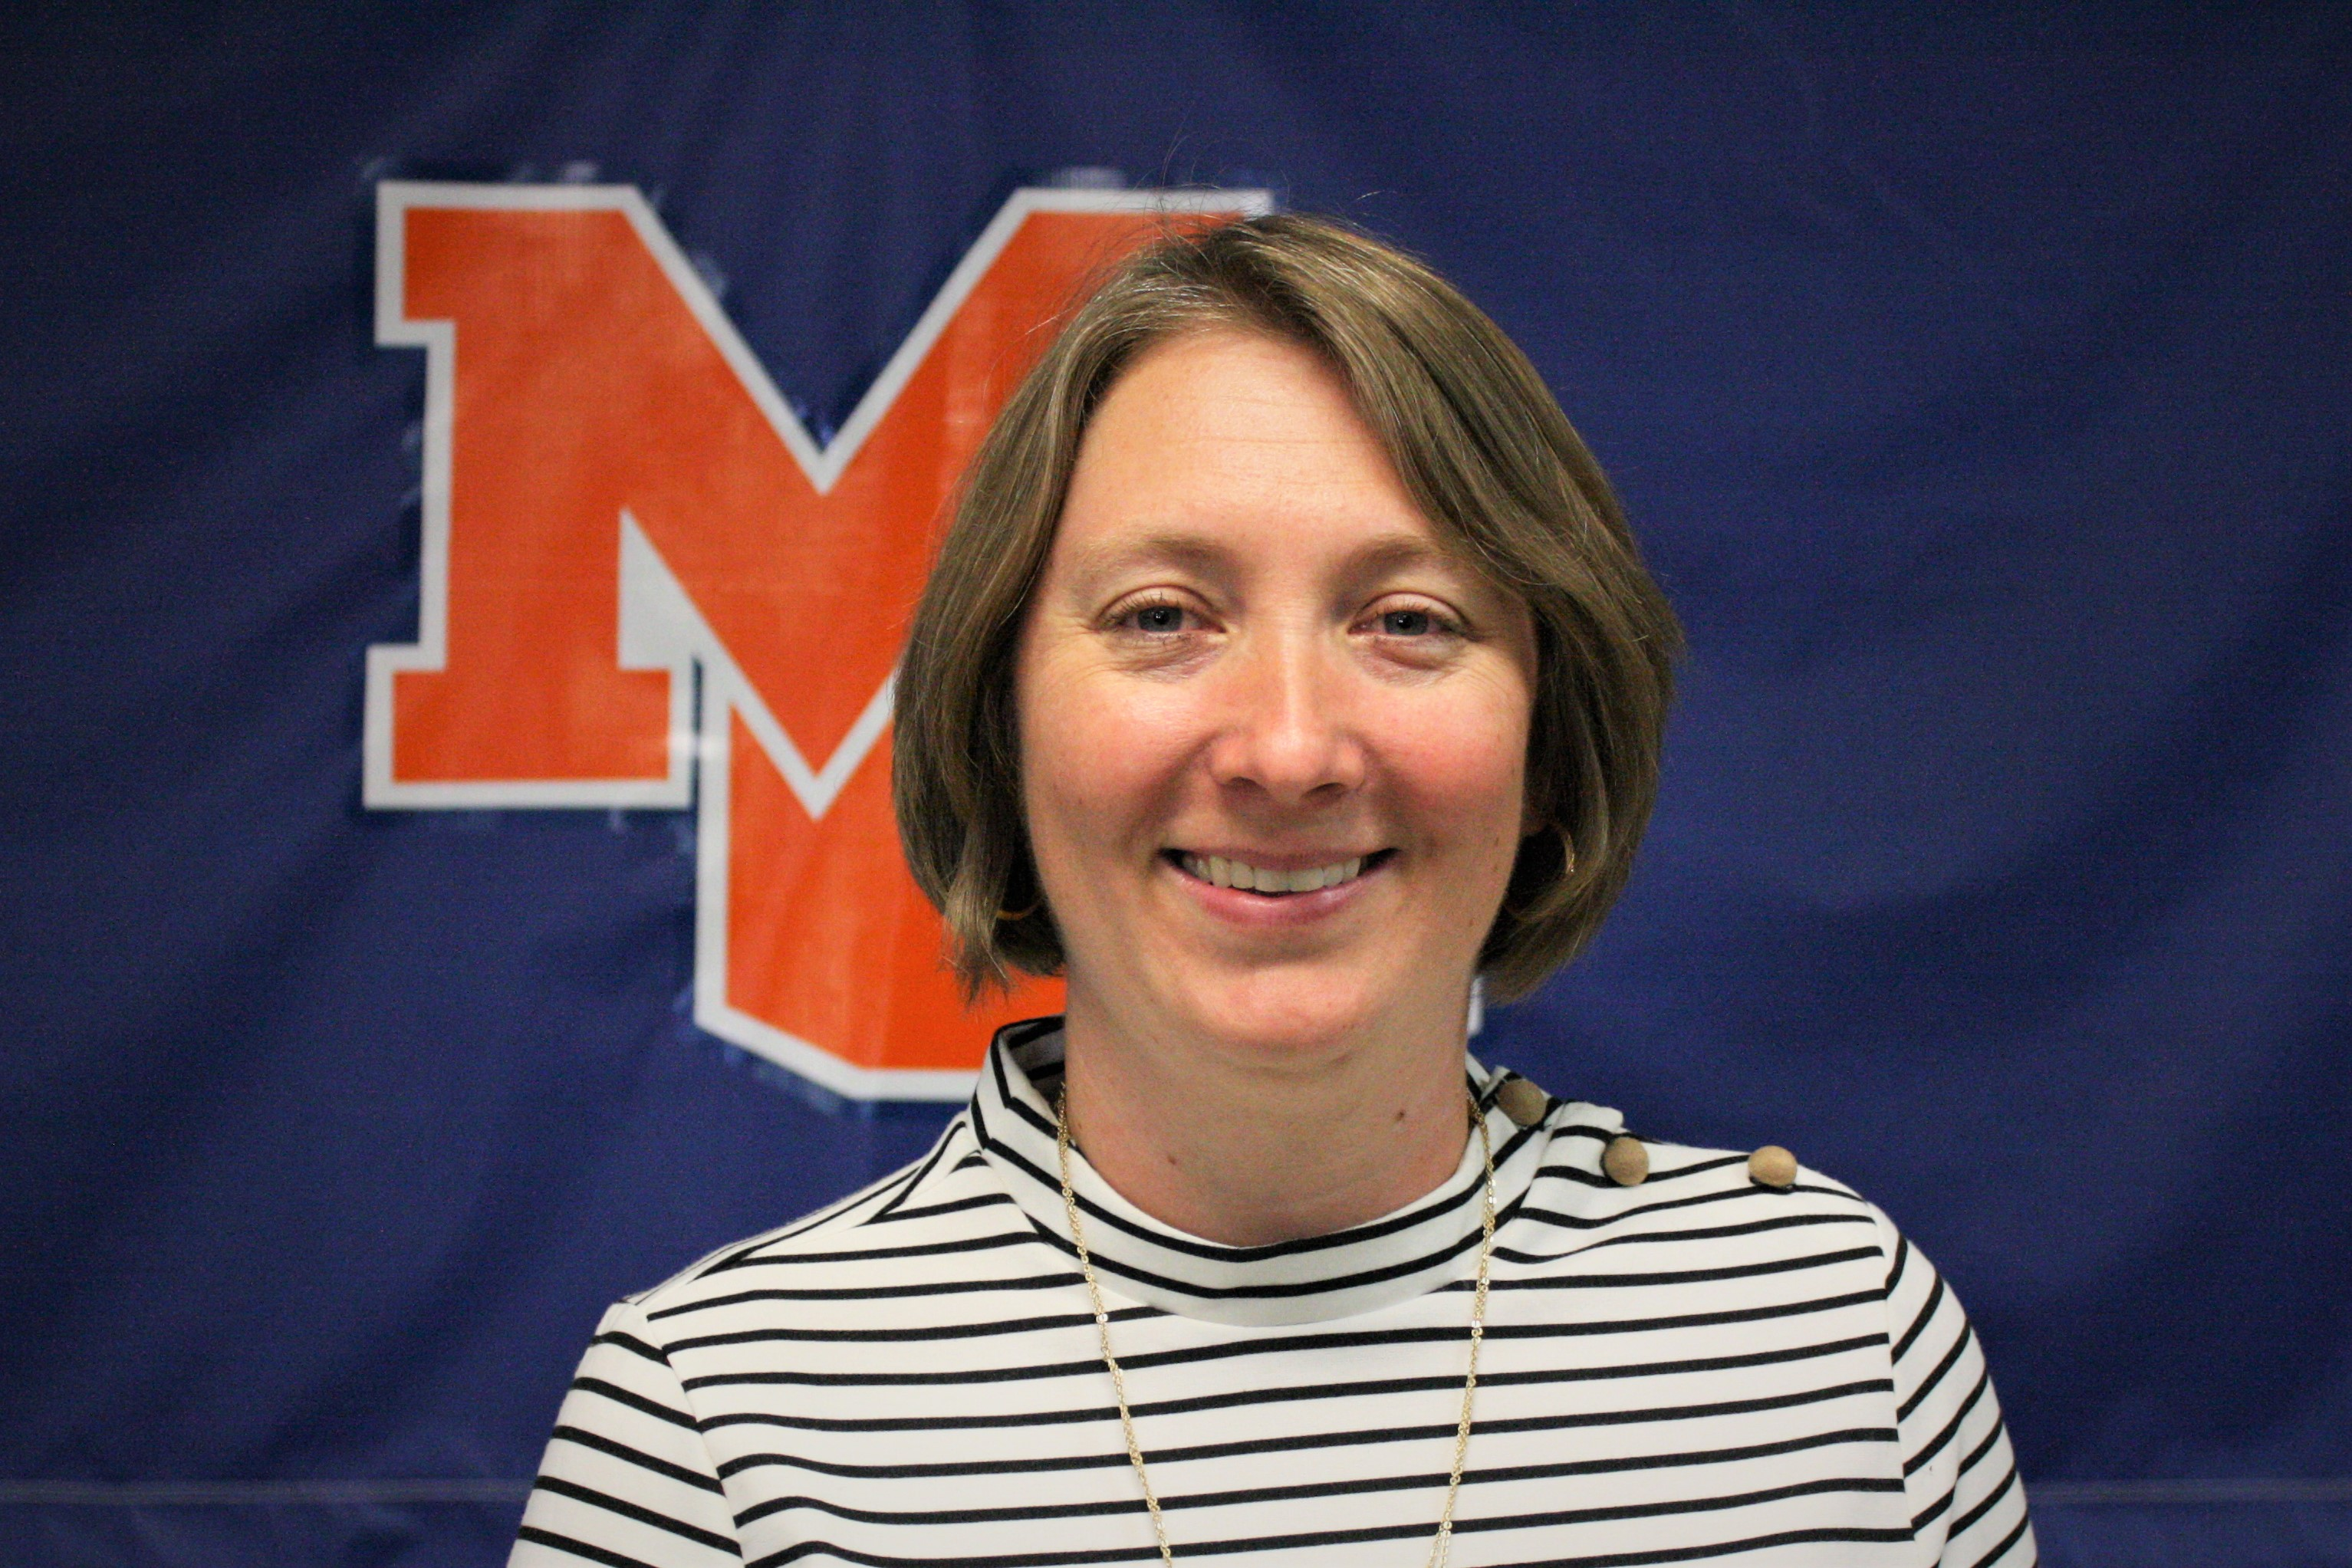 Patricia Greer, new MCHS Principal